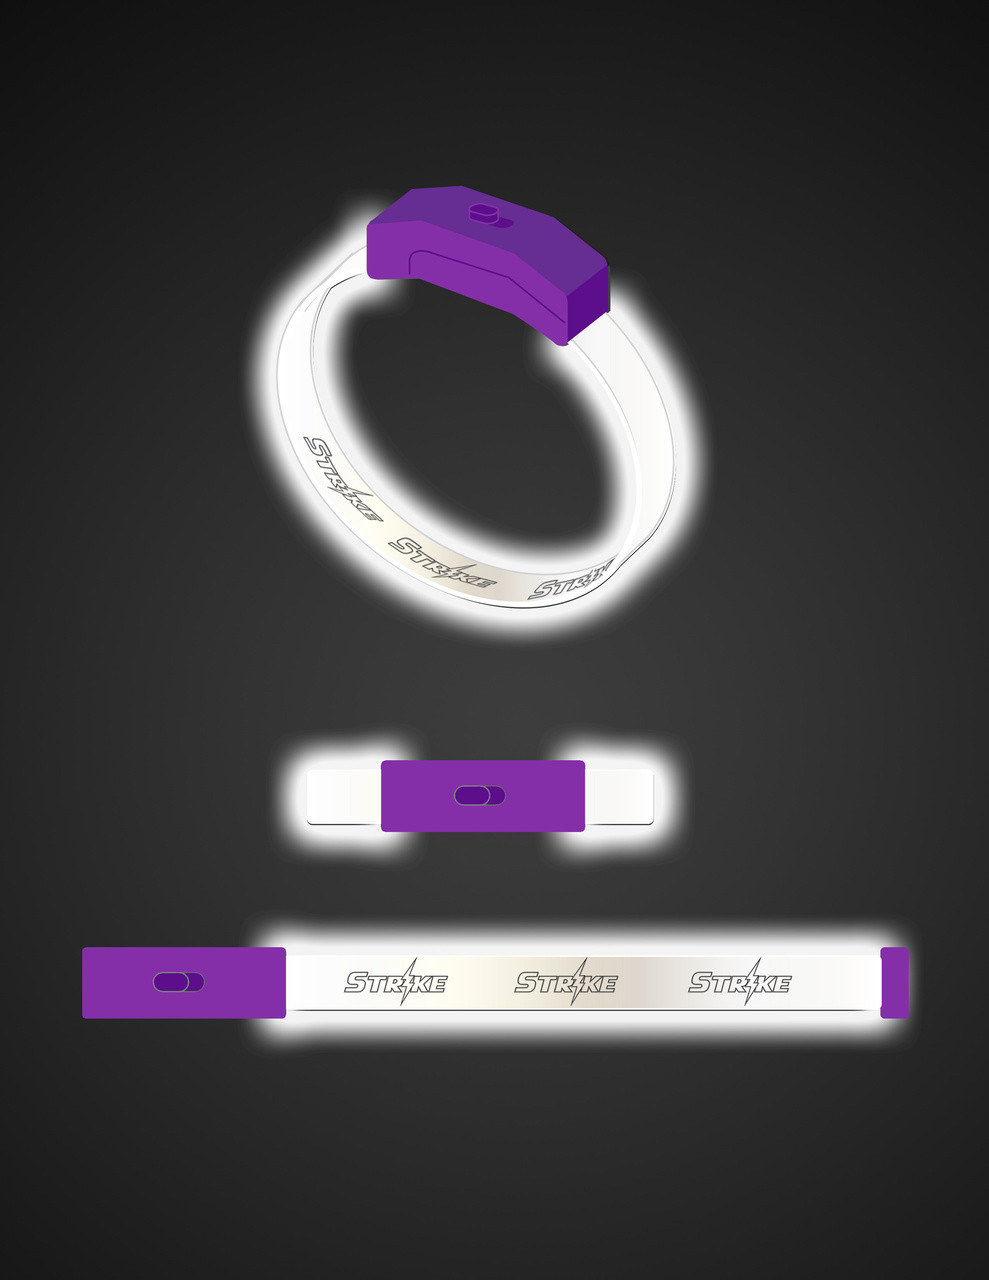 purple,LED, white,LED, Band, Bracelet, Wristband, engraved, custom, Light up,Custom,Engraved,Branded,Personalized, Bulk, LED, Wristband, LED wristband, Bracelet, Glow,Neon, UV, LED Bands, wrist band,wristband, illuminated, light up, wholesale, School, wedding, nightclub, promo, merch,